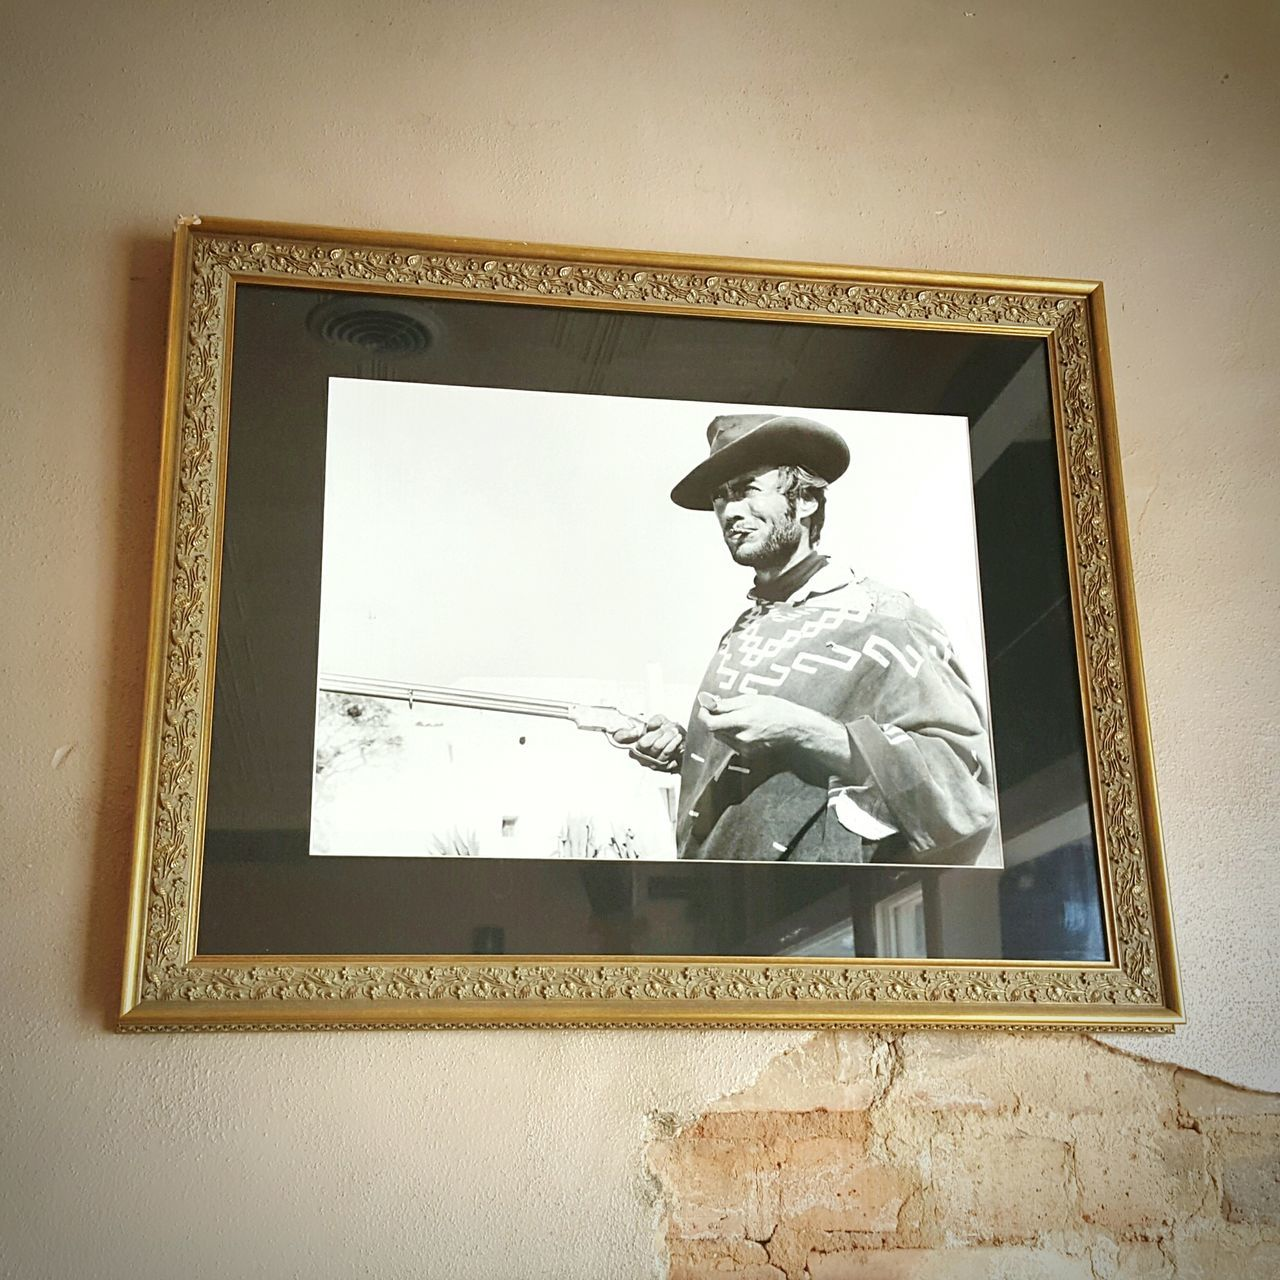 43 Golden Moments Clint Eastwood Portrait in a Golden Frame Hung On Wall Random Pic Leone's Spagetti Western A Fistful Of Dollars Senoia, Ga S6